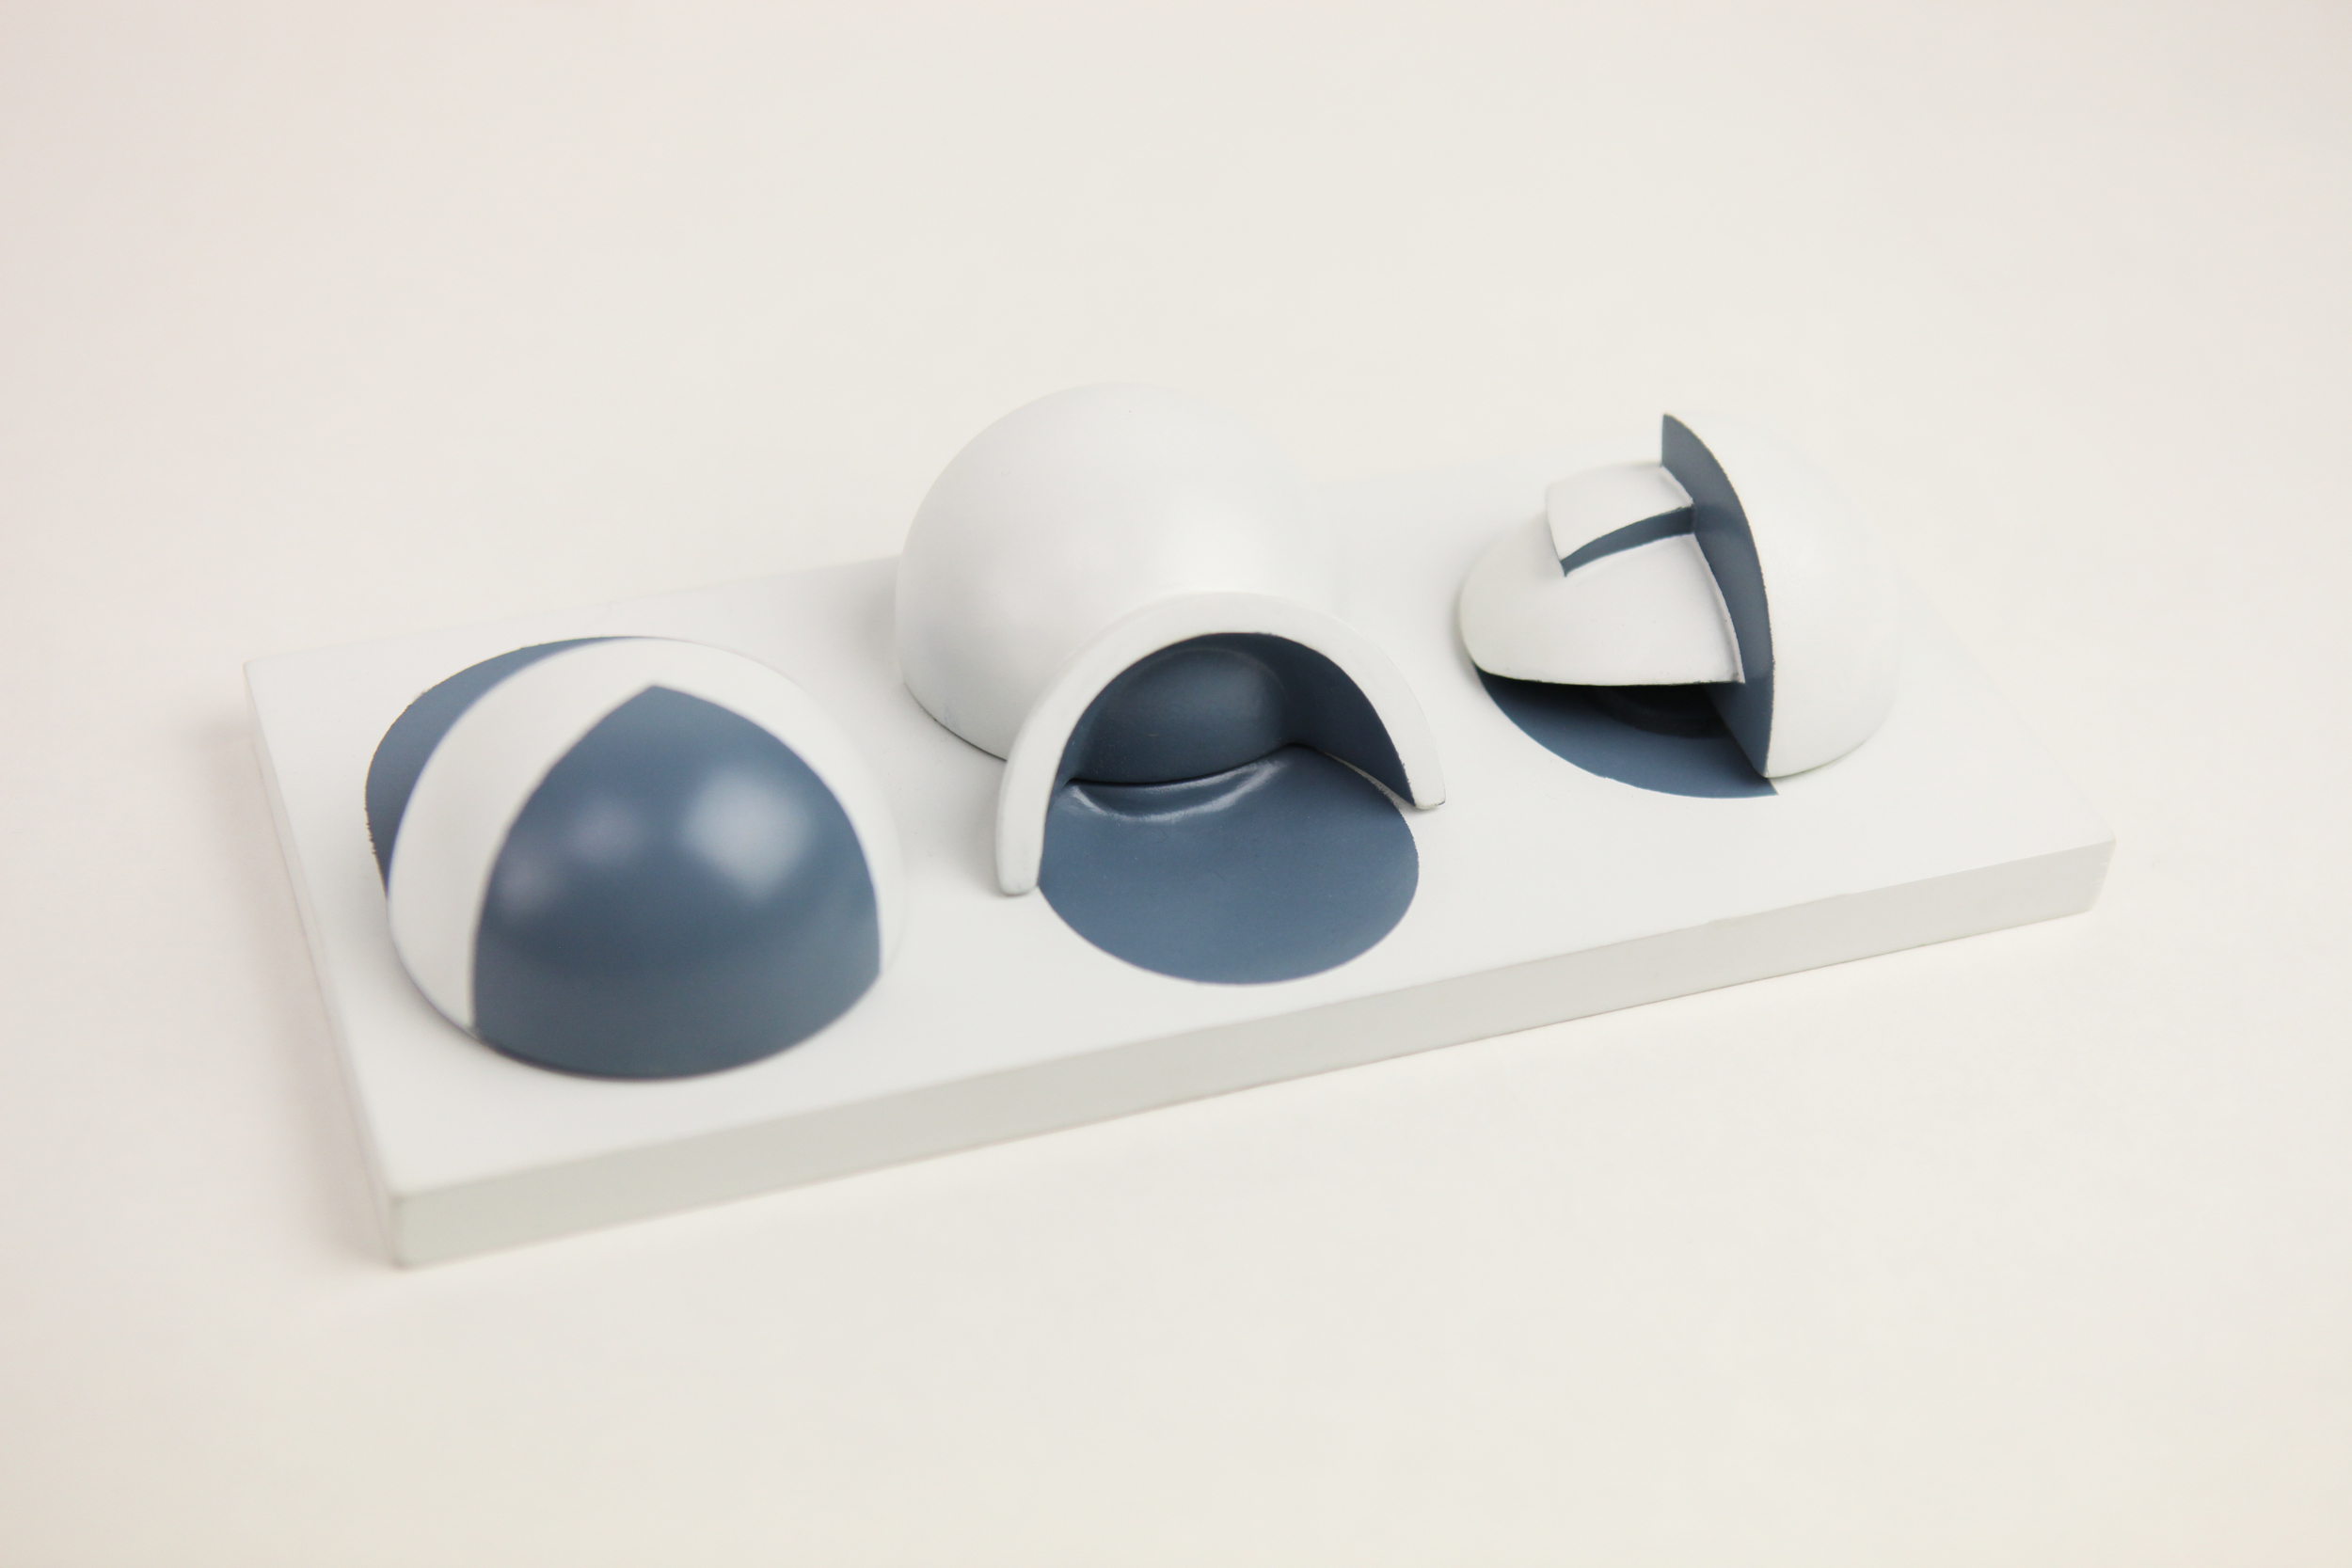 These forms are based off of hemispheres and some various ways to cut and resemble pieces of a sphere.